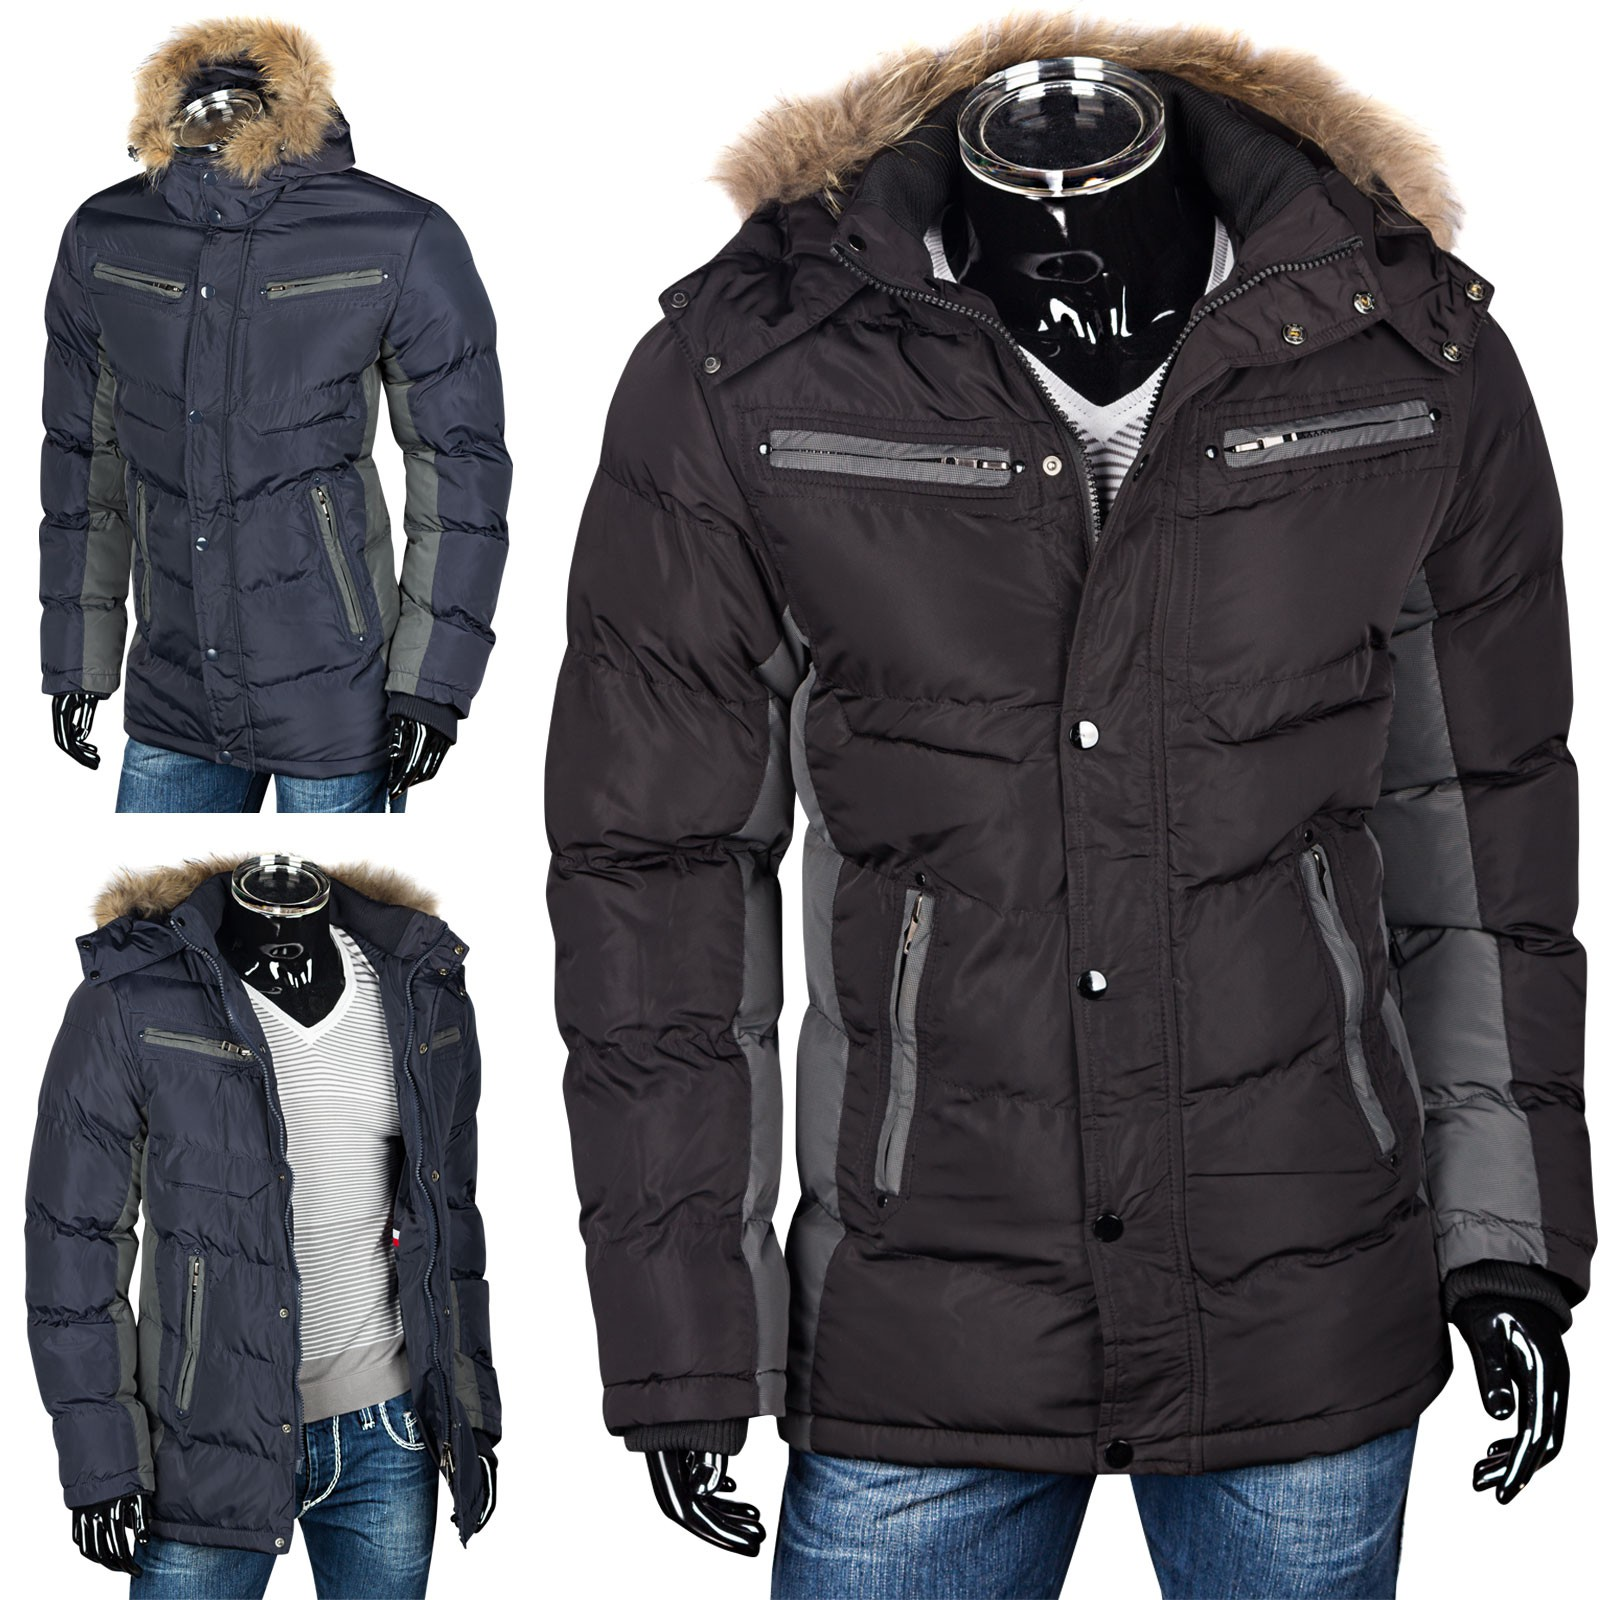 herren winterjacke steppjacke parka mit fellkapuze daunen look herren. Black Bedroom Furniture Sets. Home Design Ideas